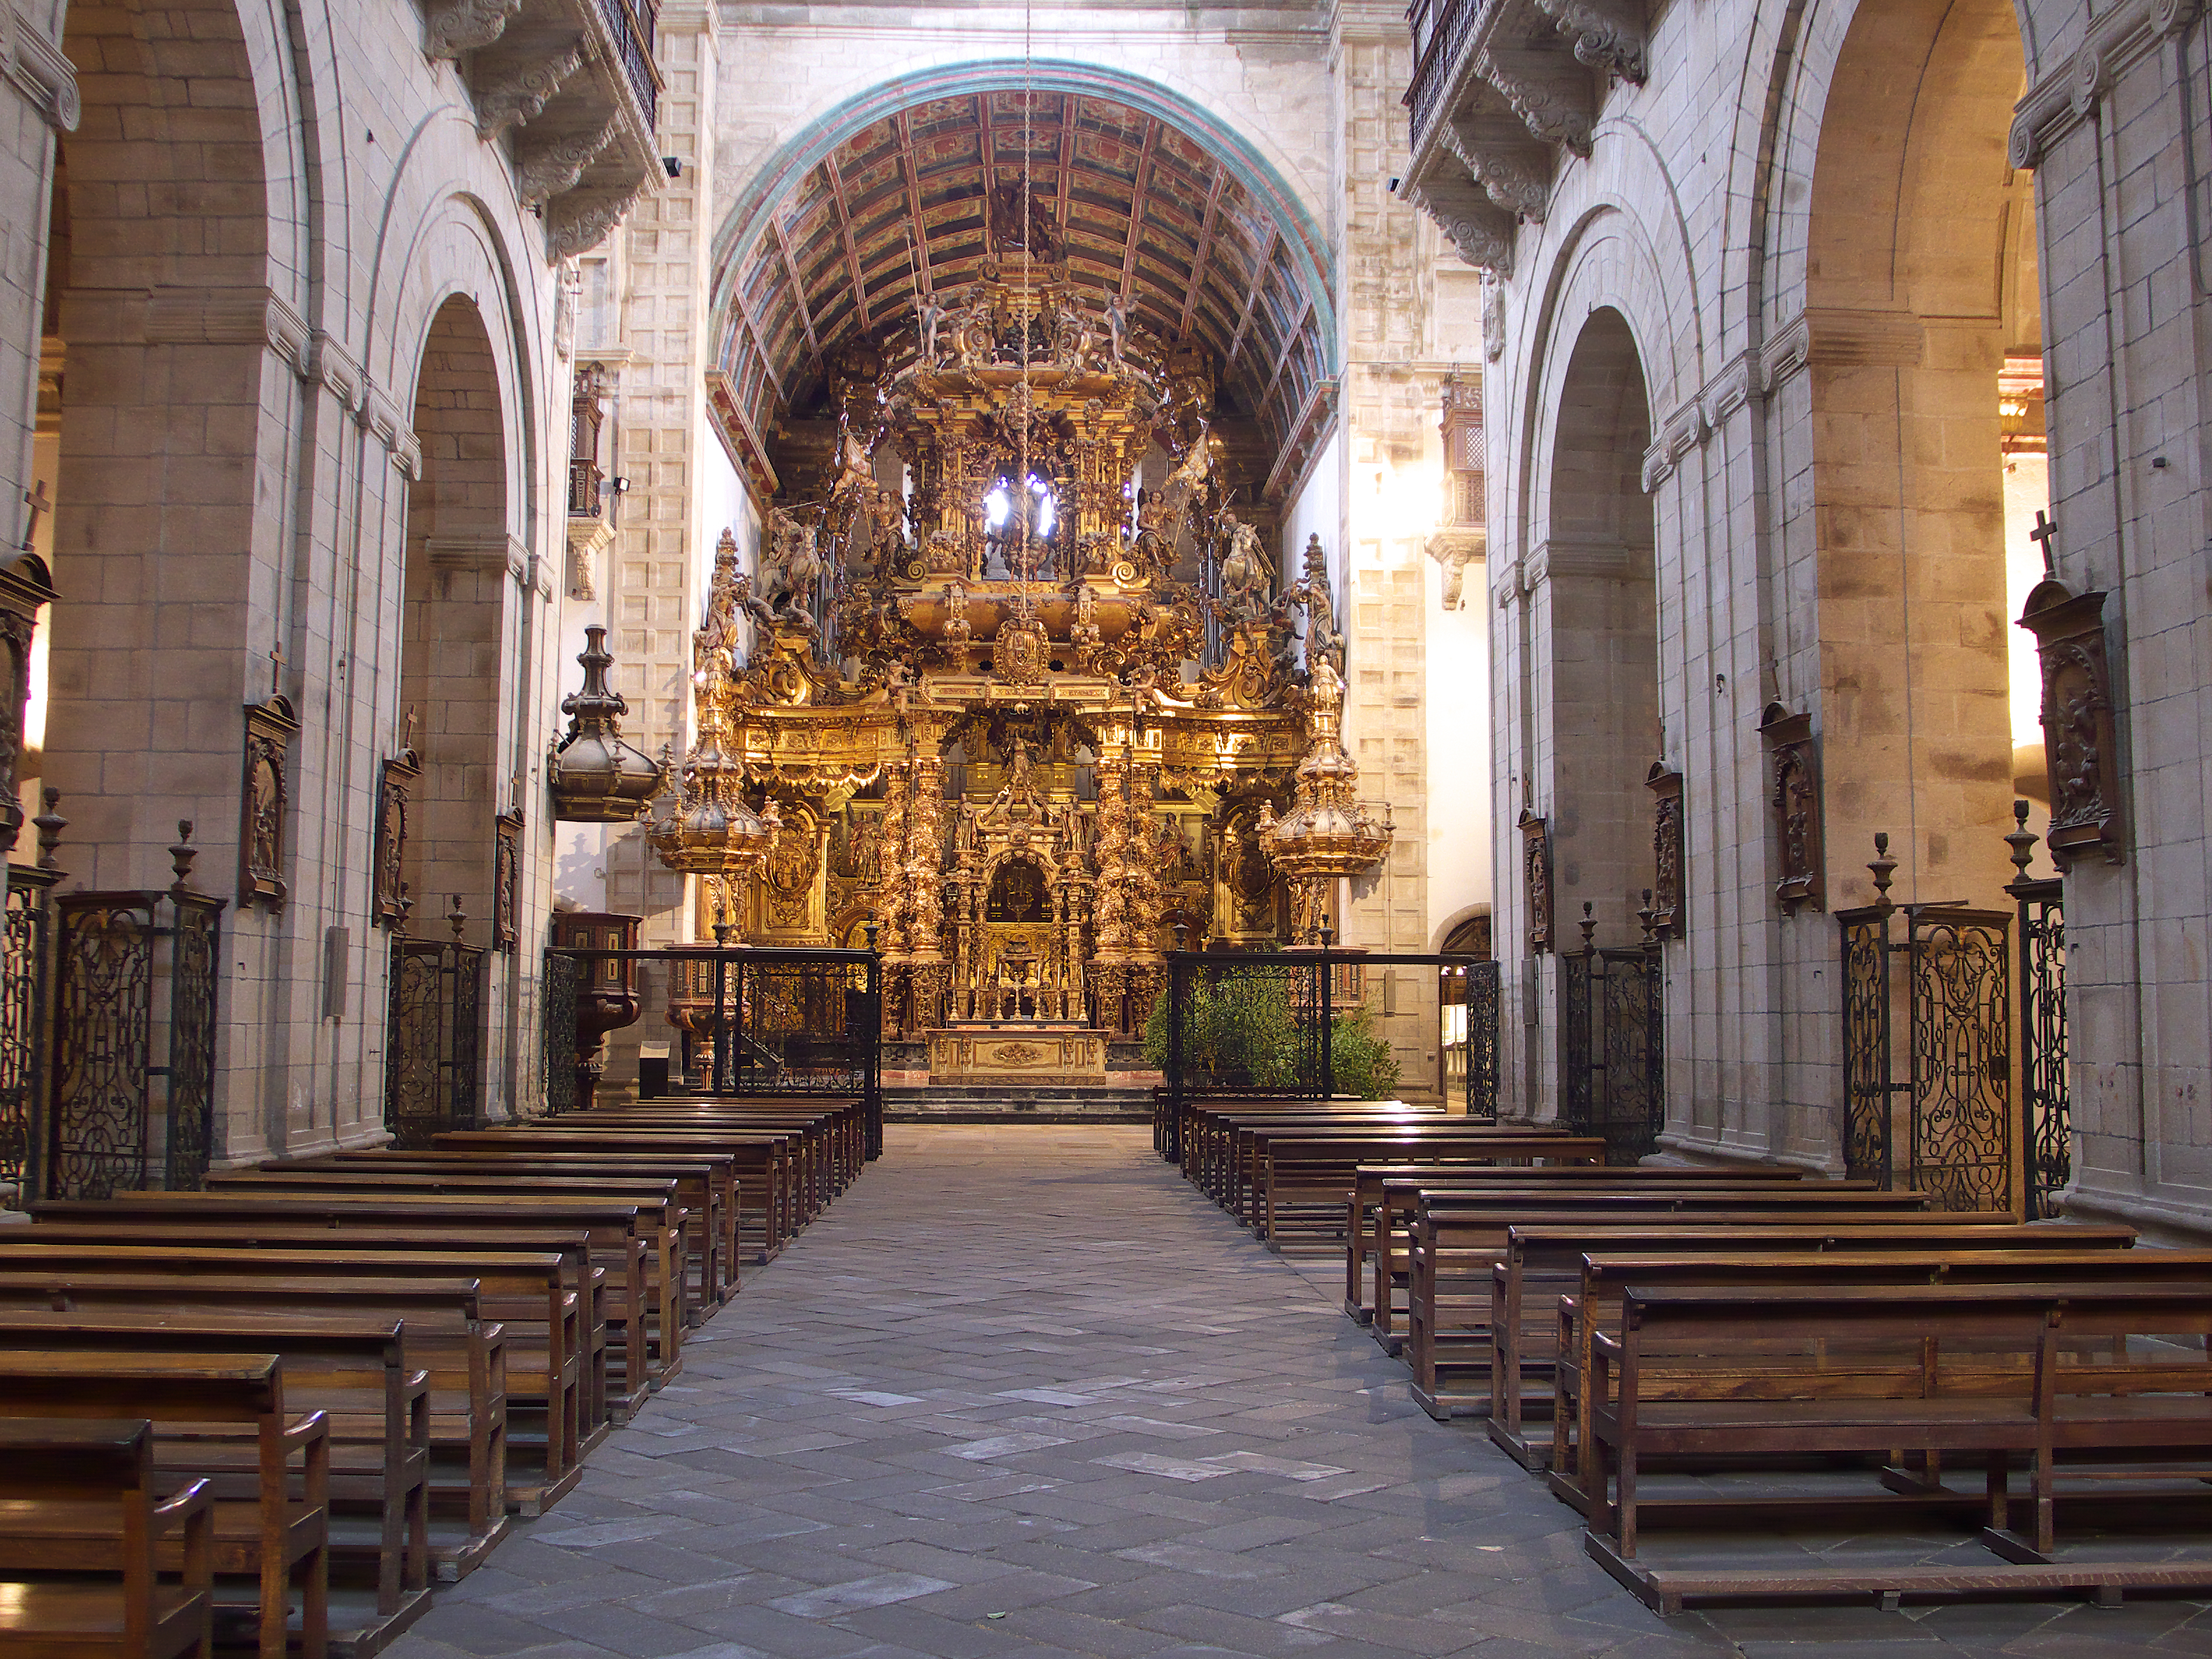 Spain, for many centuries, was the most Catholic country in